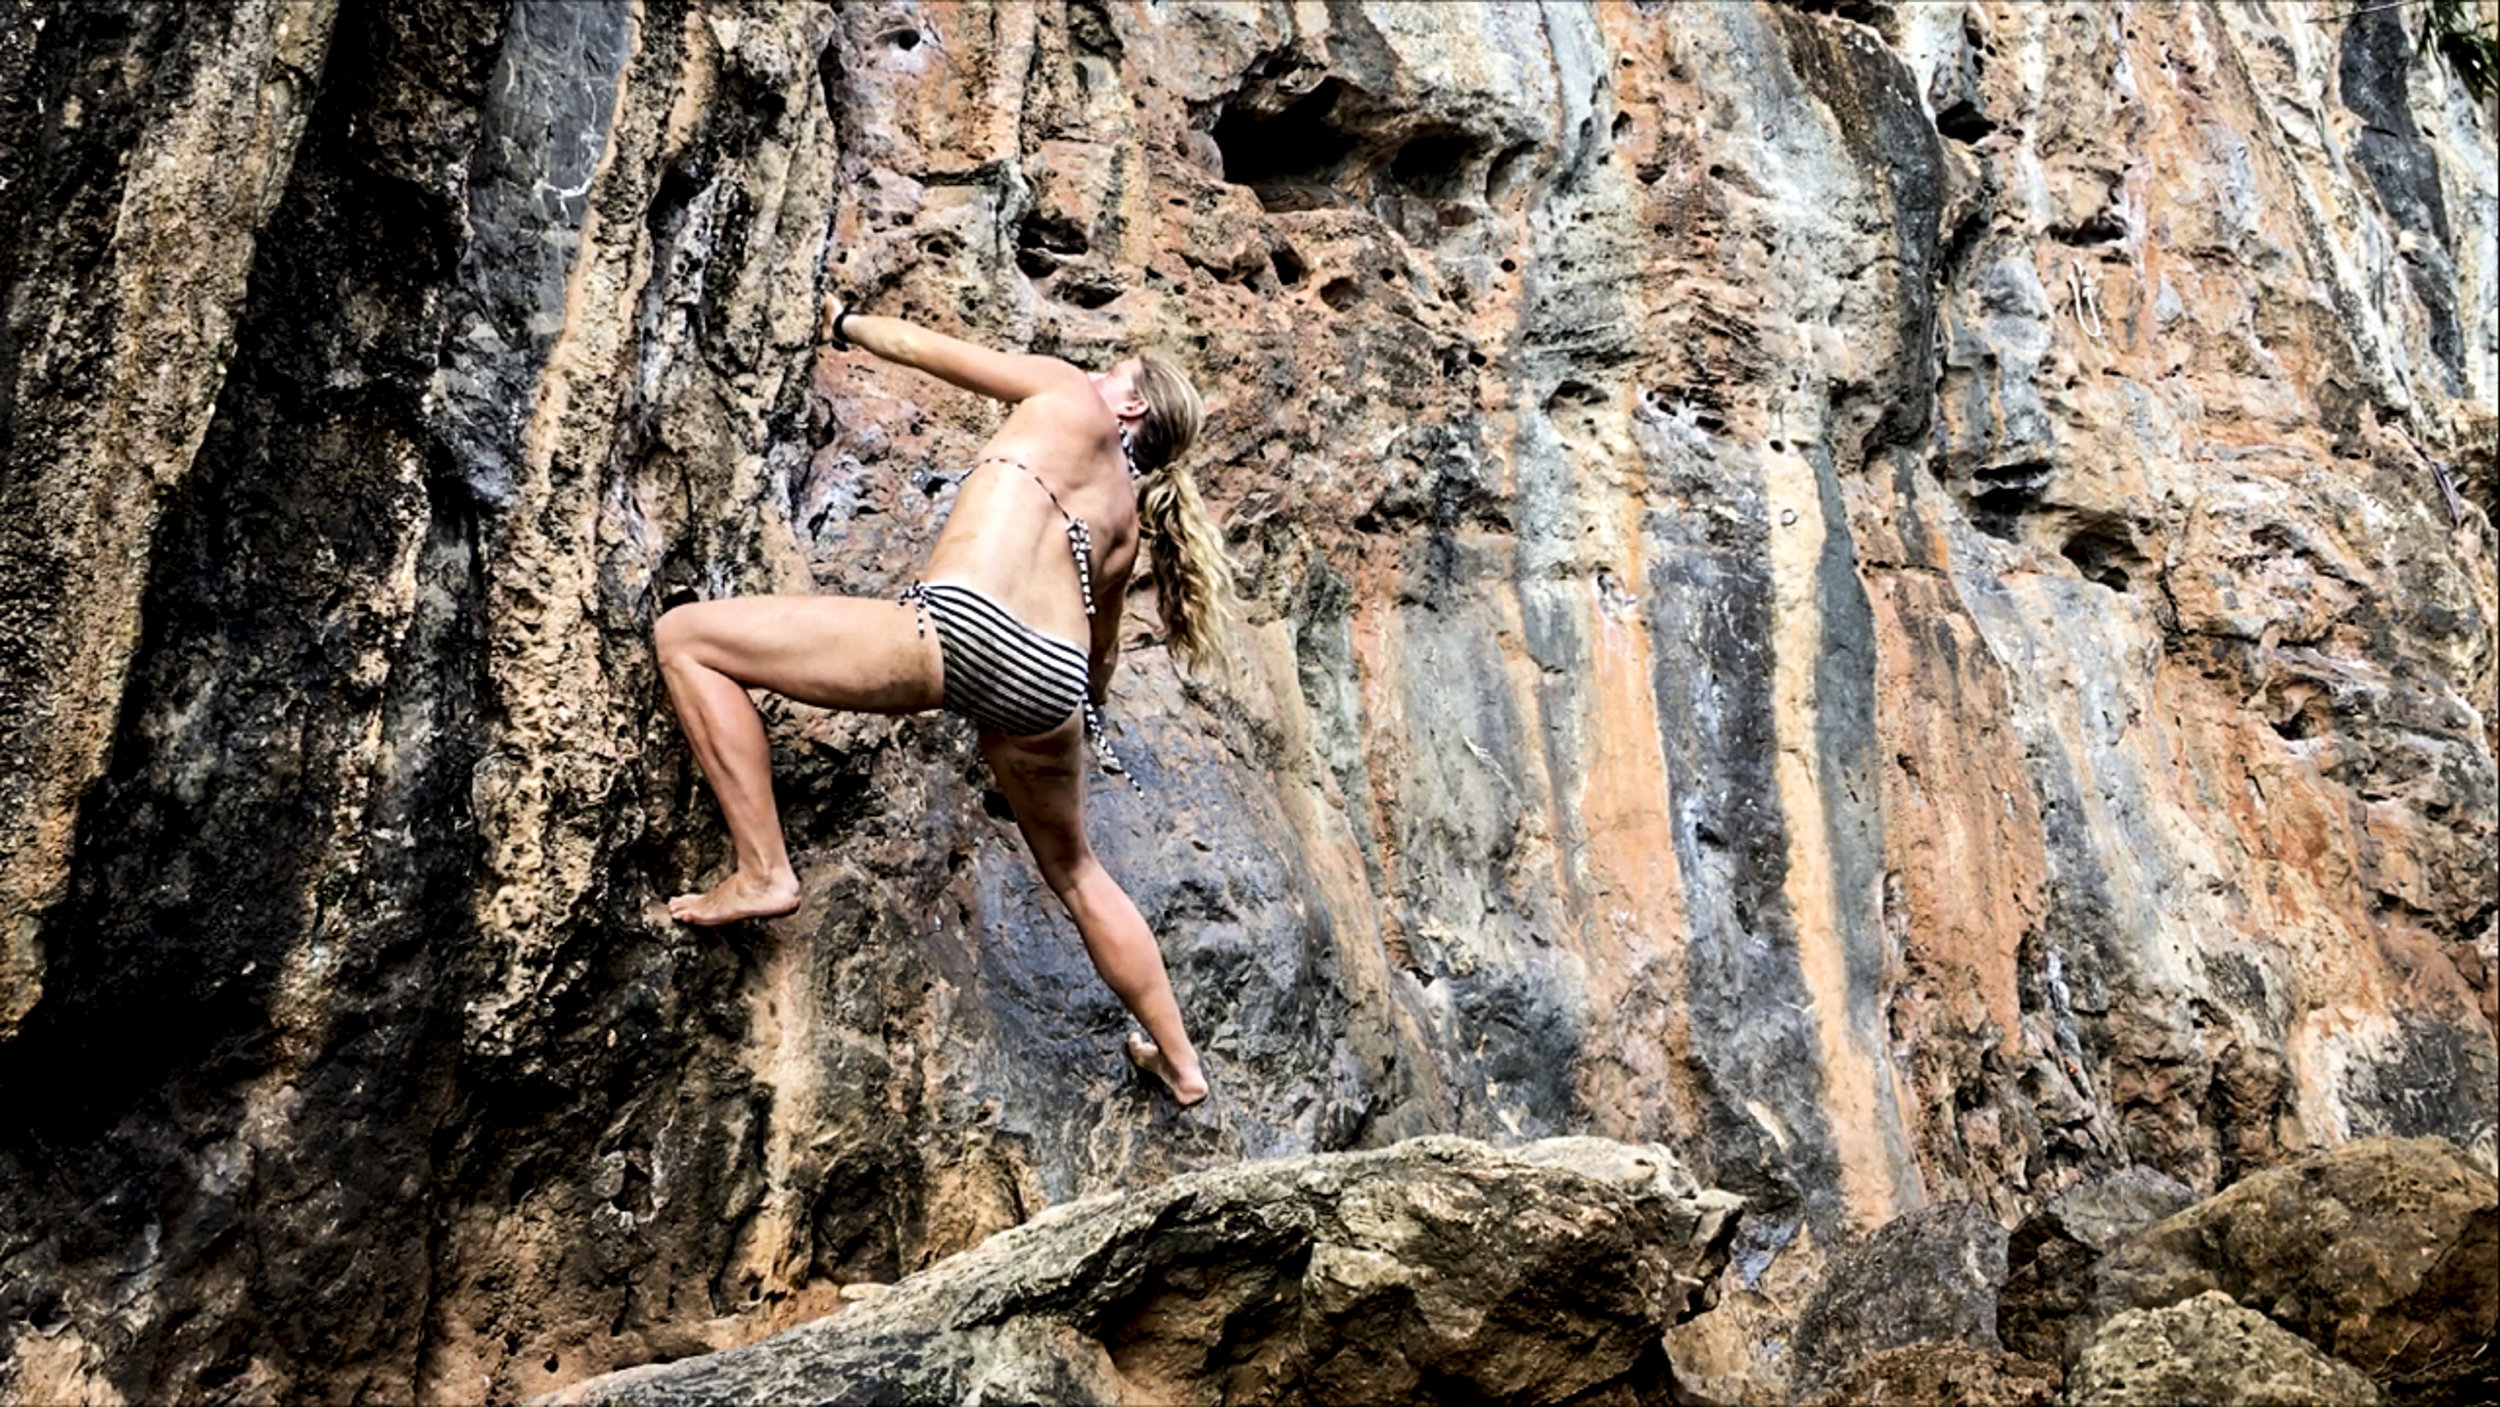 Simple movement over rock...the ultimate joy of climbing. Shoes or no shoes, clothes or bathing suit.